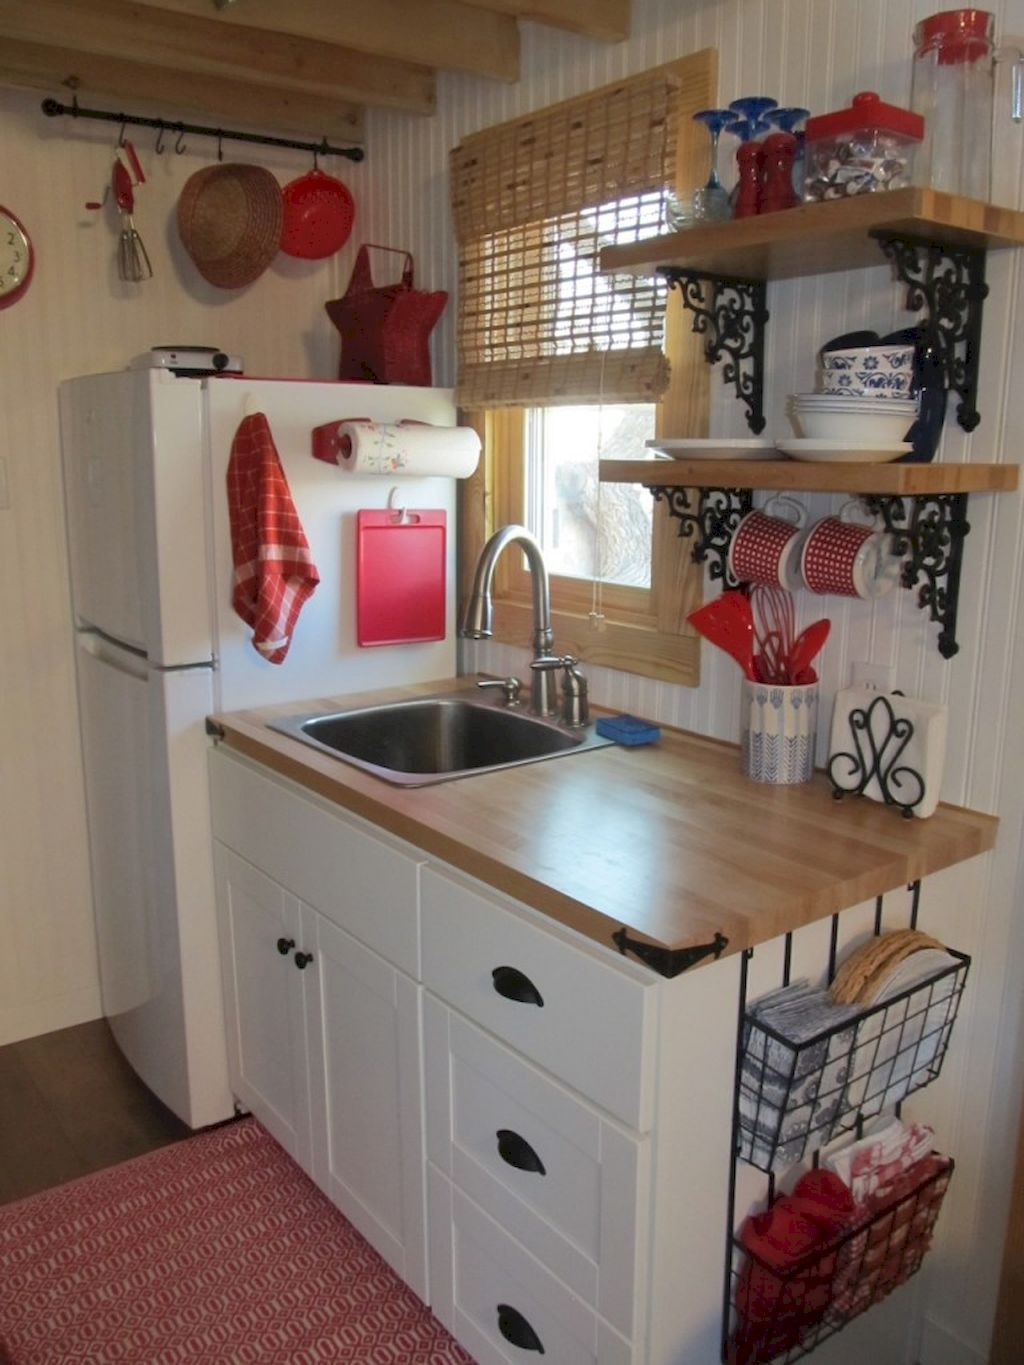 60 Clever & Clean Kitchen Storage Organization Ideas #kitchendesignideas